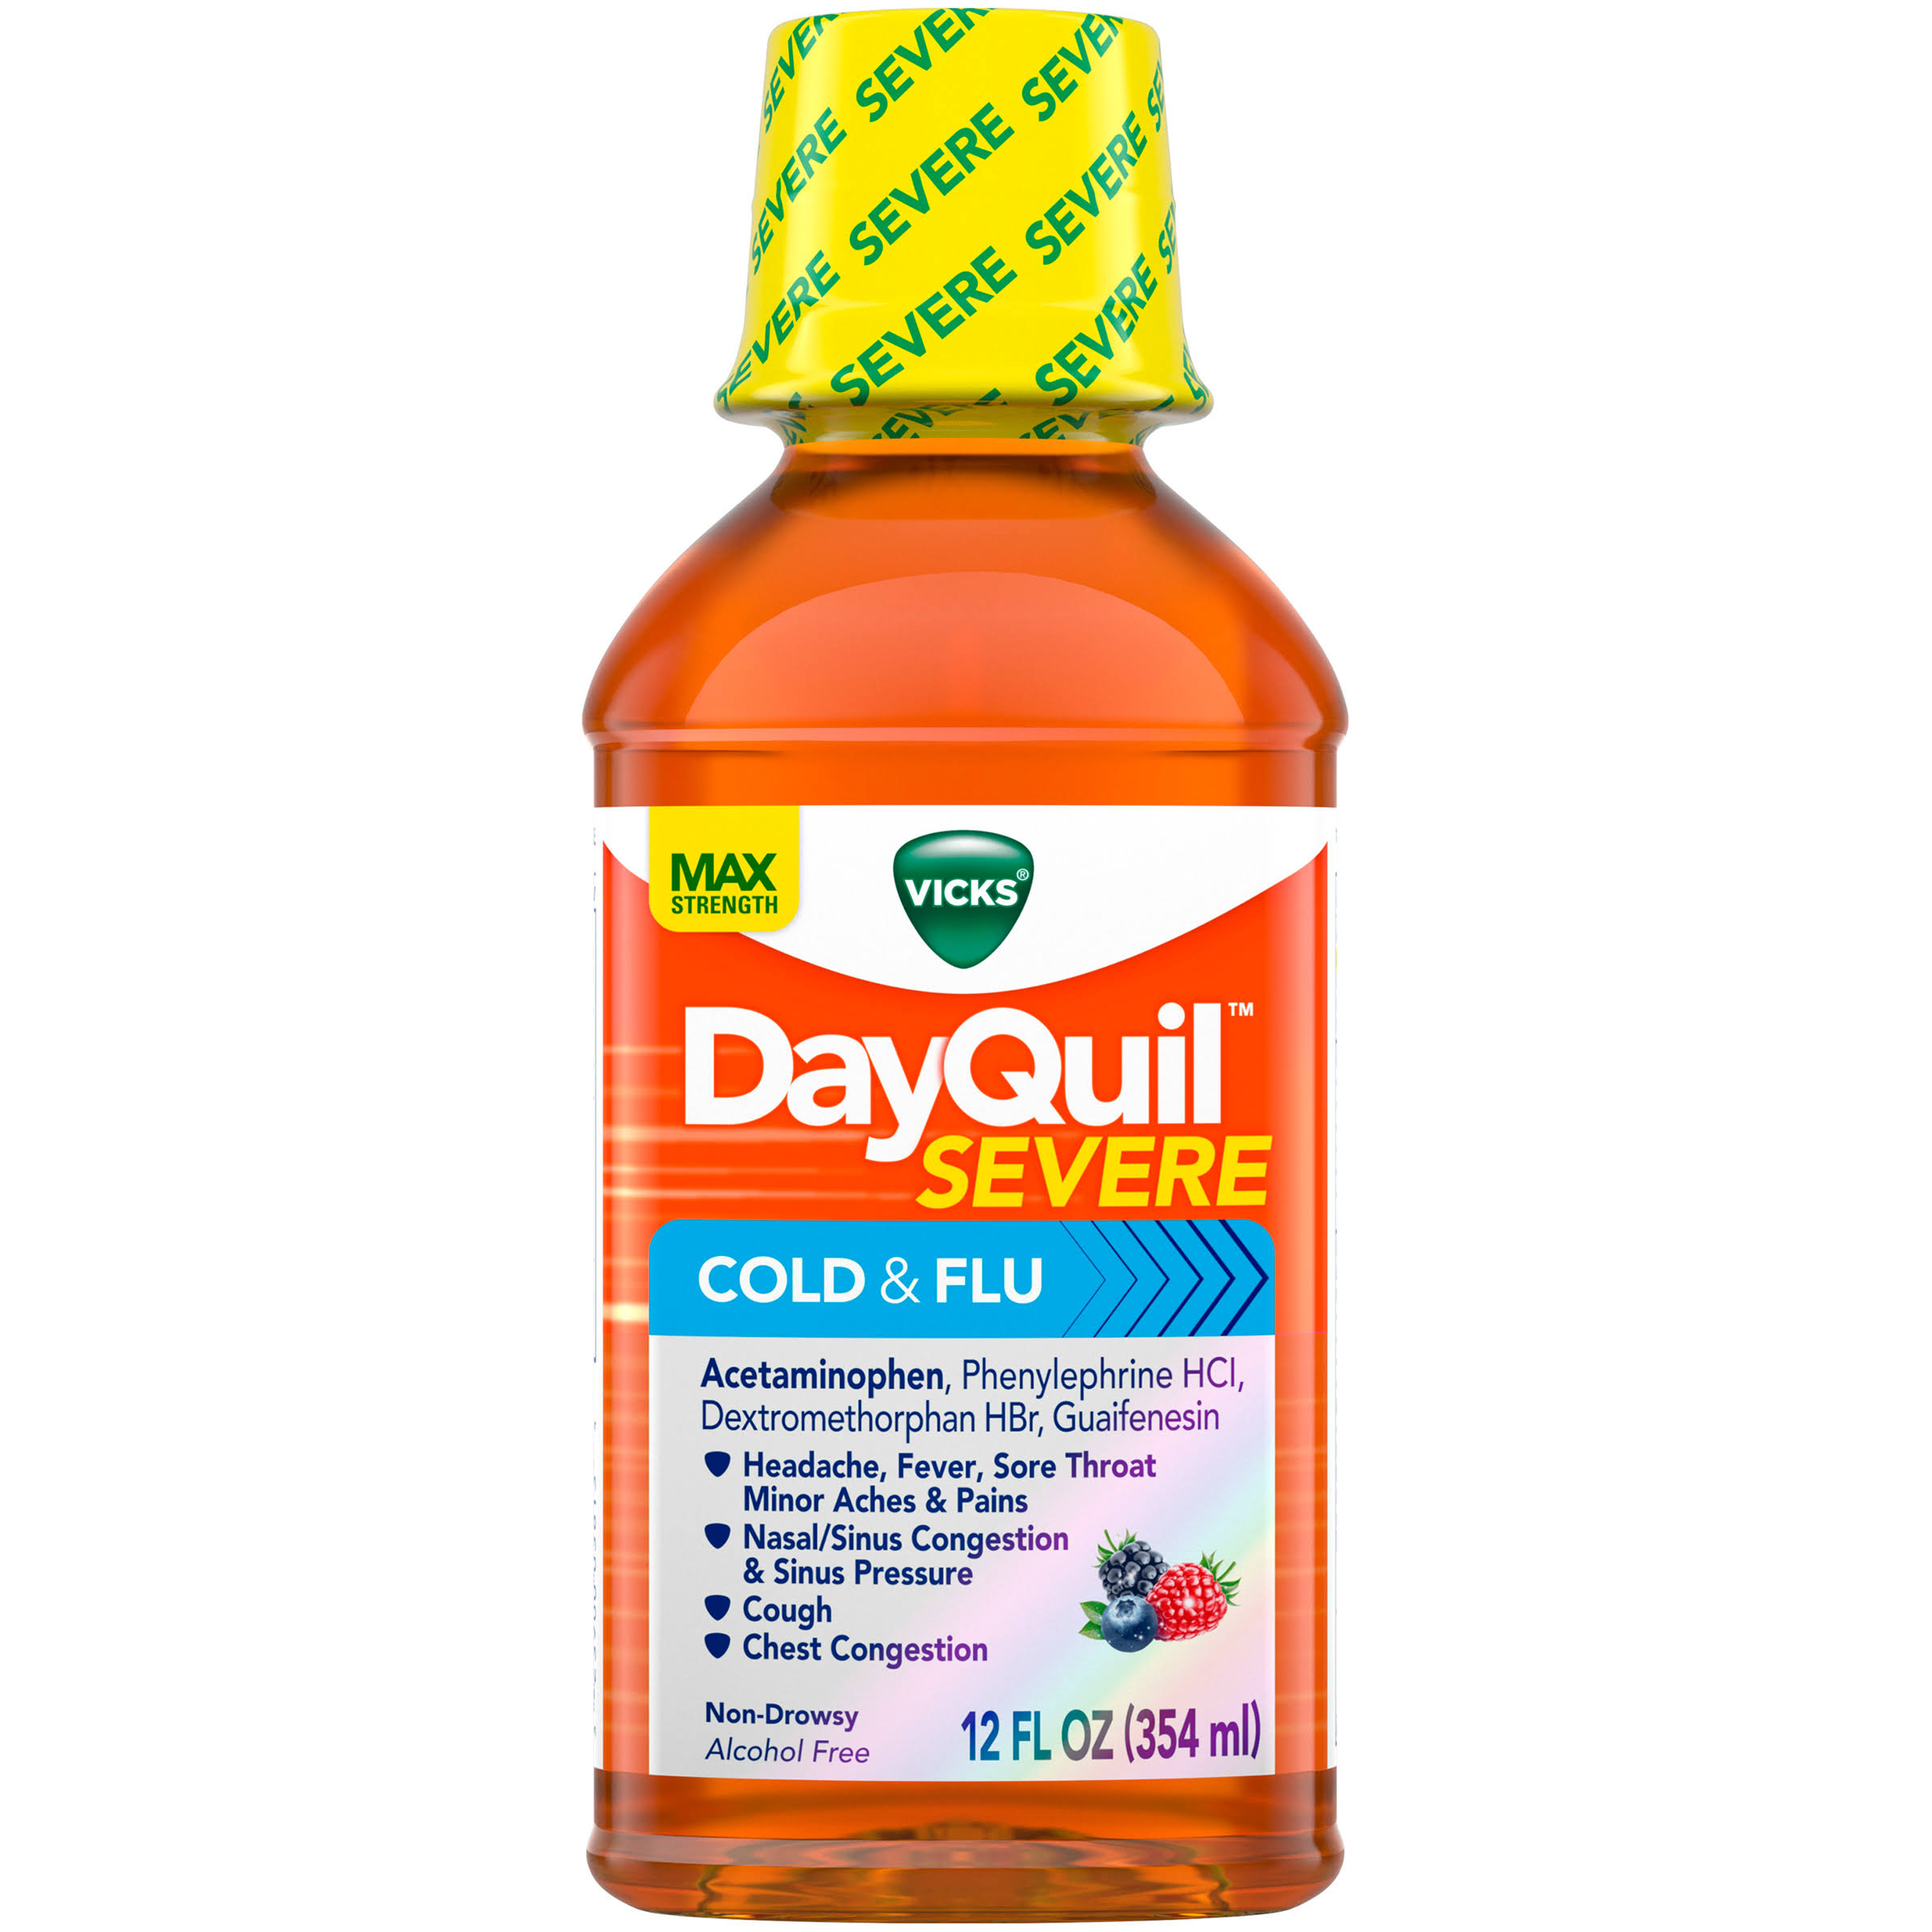 Vicks DayQuil Max Strength Severe Cold and Flu Medicine - 12oz